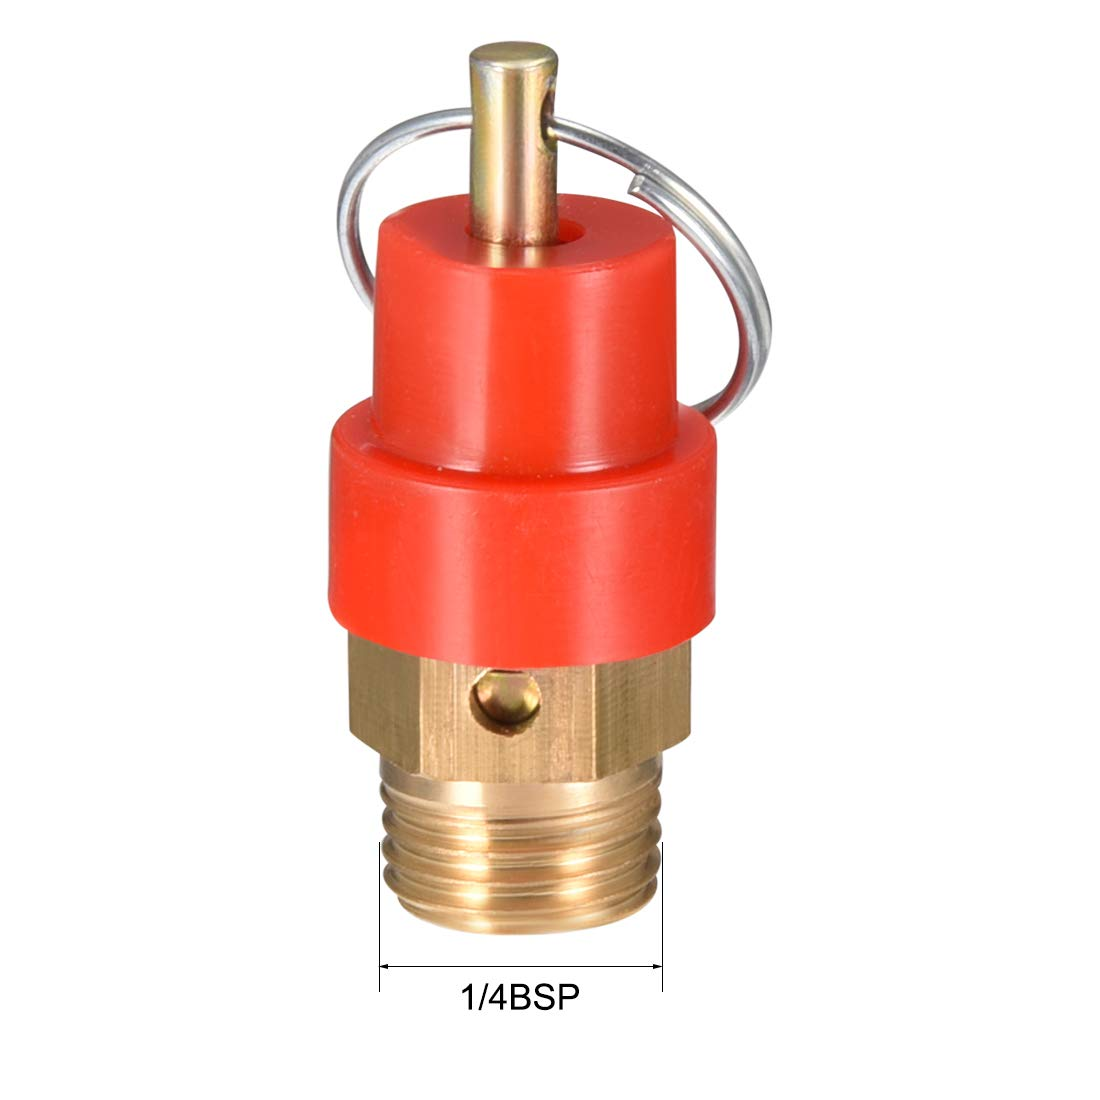 1//4 BSP Male 0.8Mpa Set Pressure uxcell Safety Valve Air Compressor Pressure Relief Valve 2Pack Red Hat